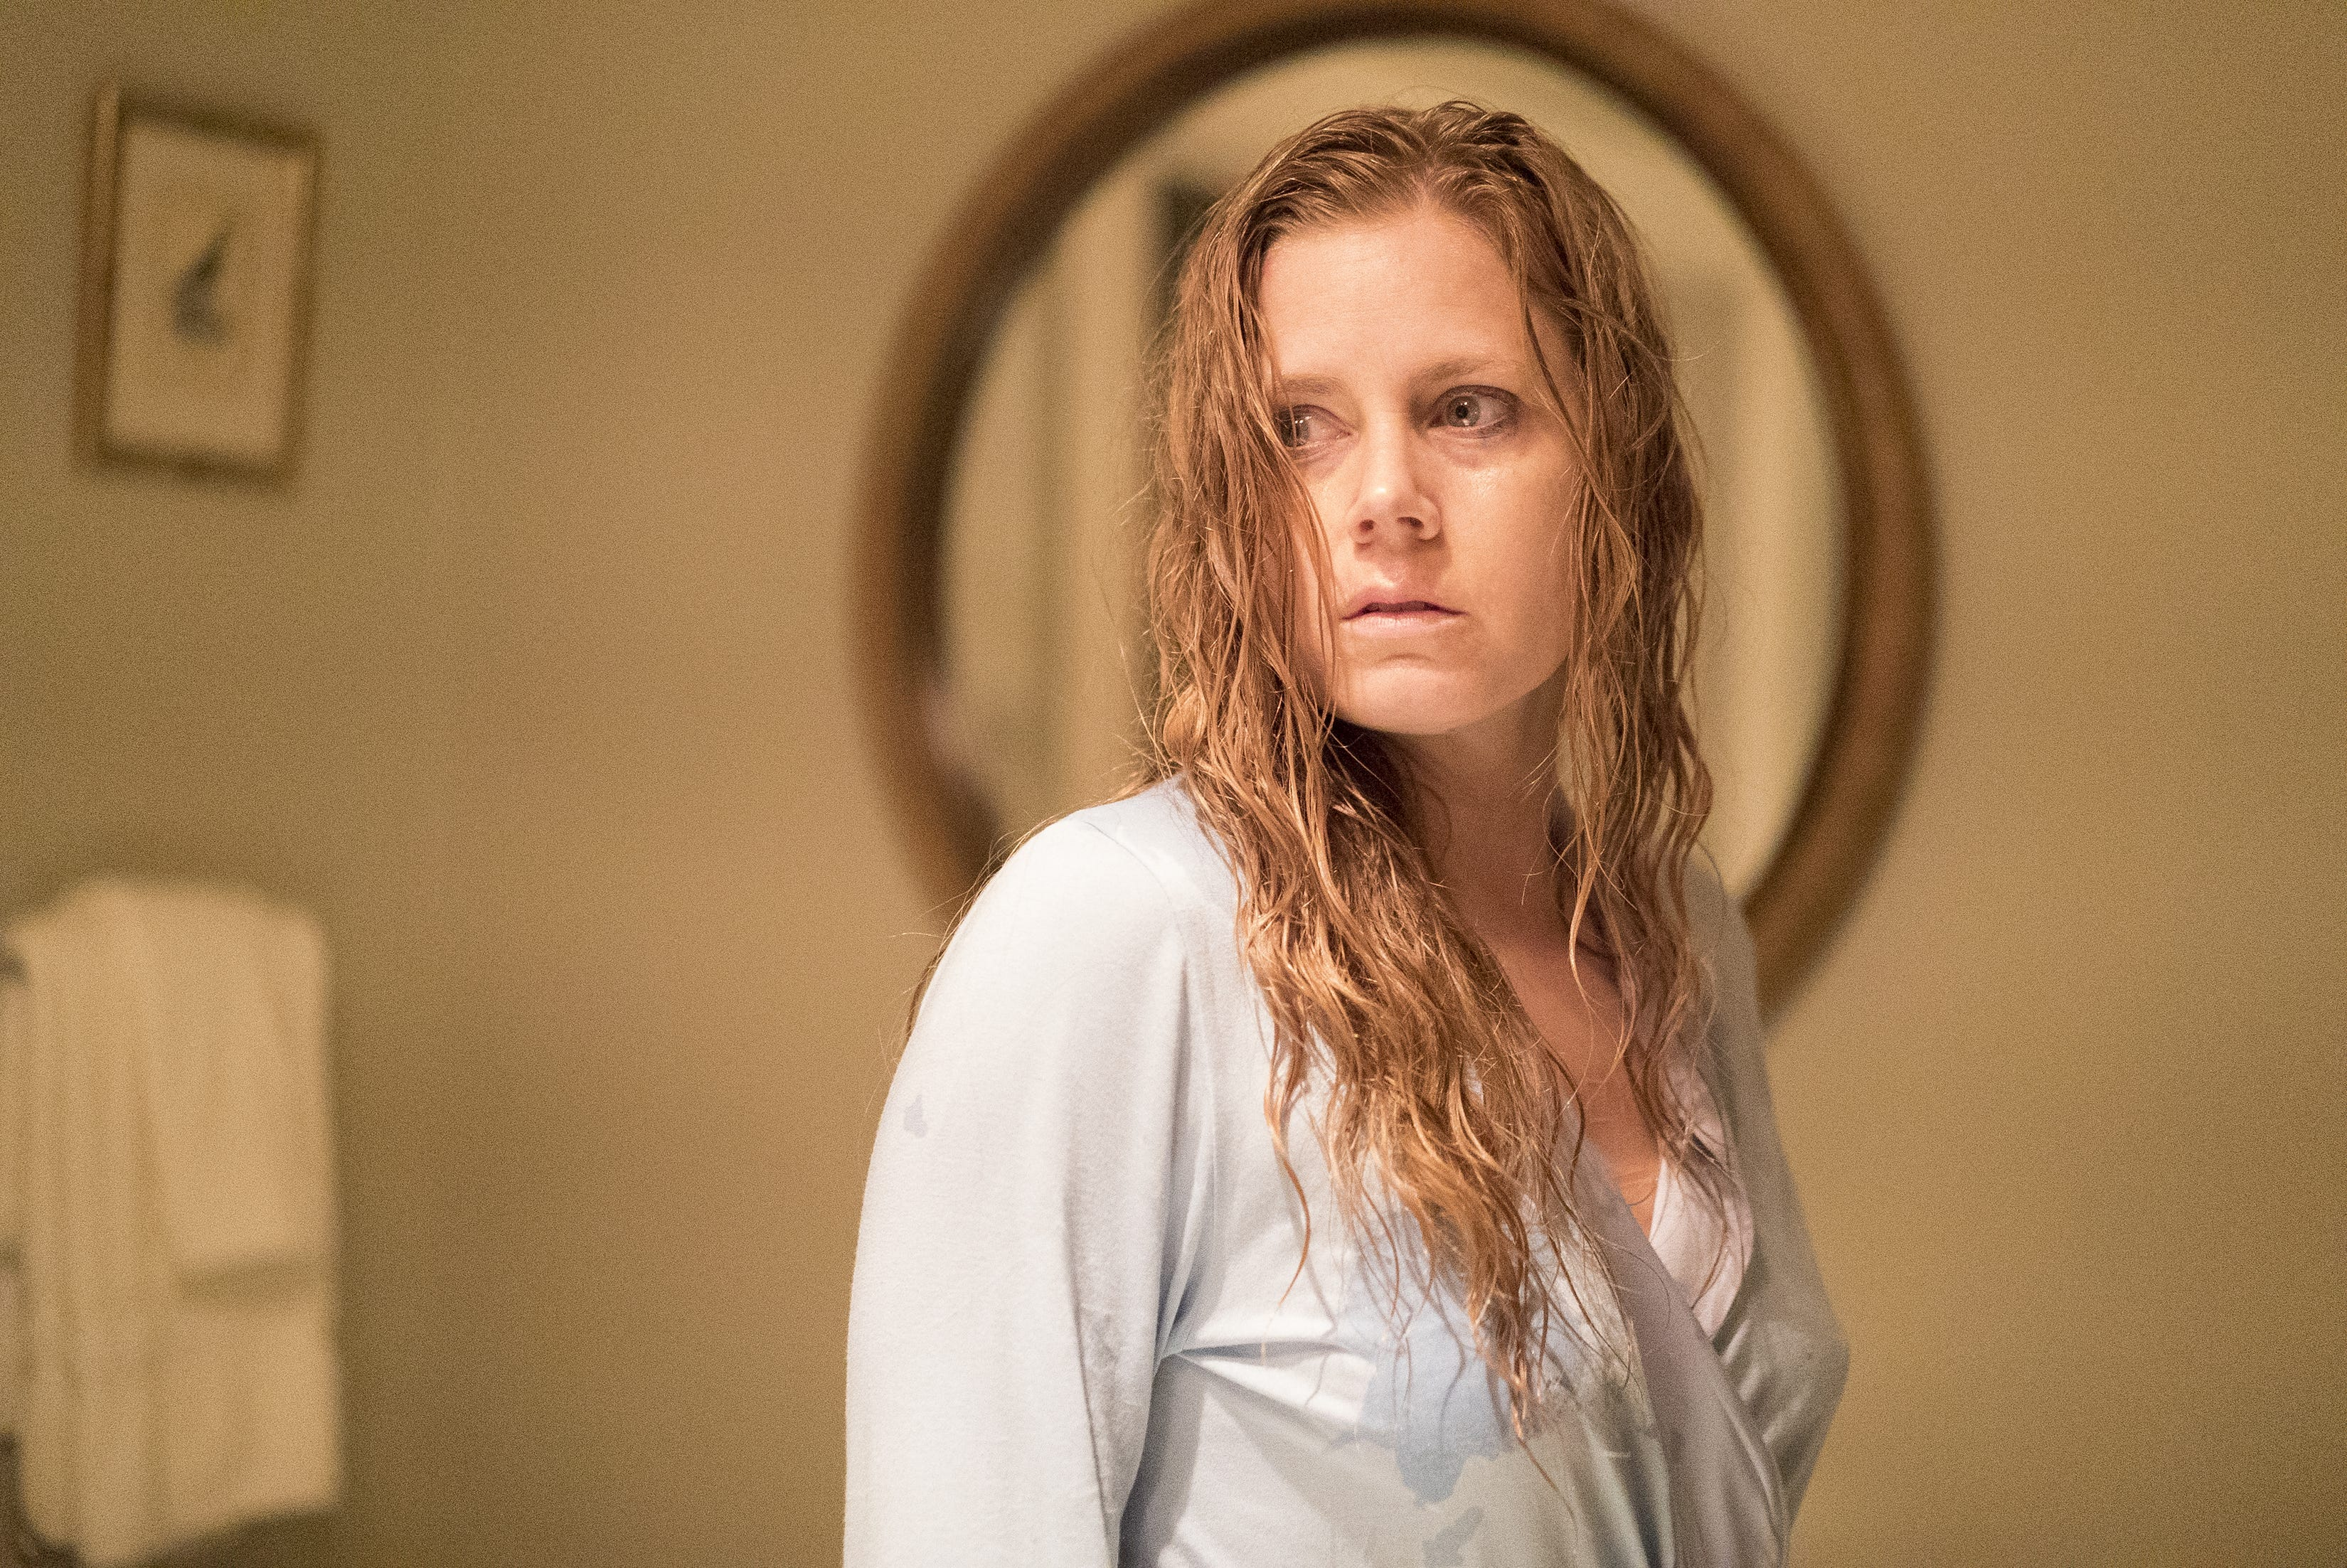 Who is the real 'Sharp Objects' killer? Big finale twist gives answers